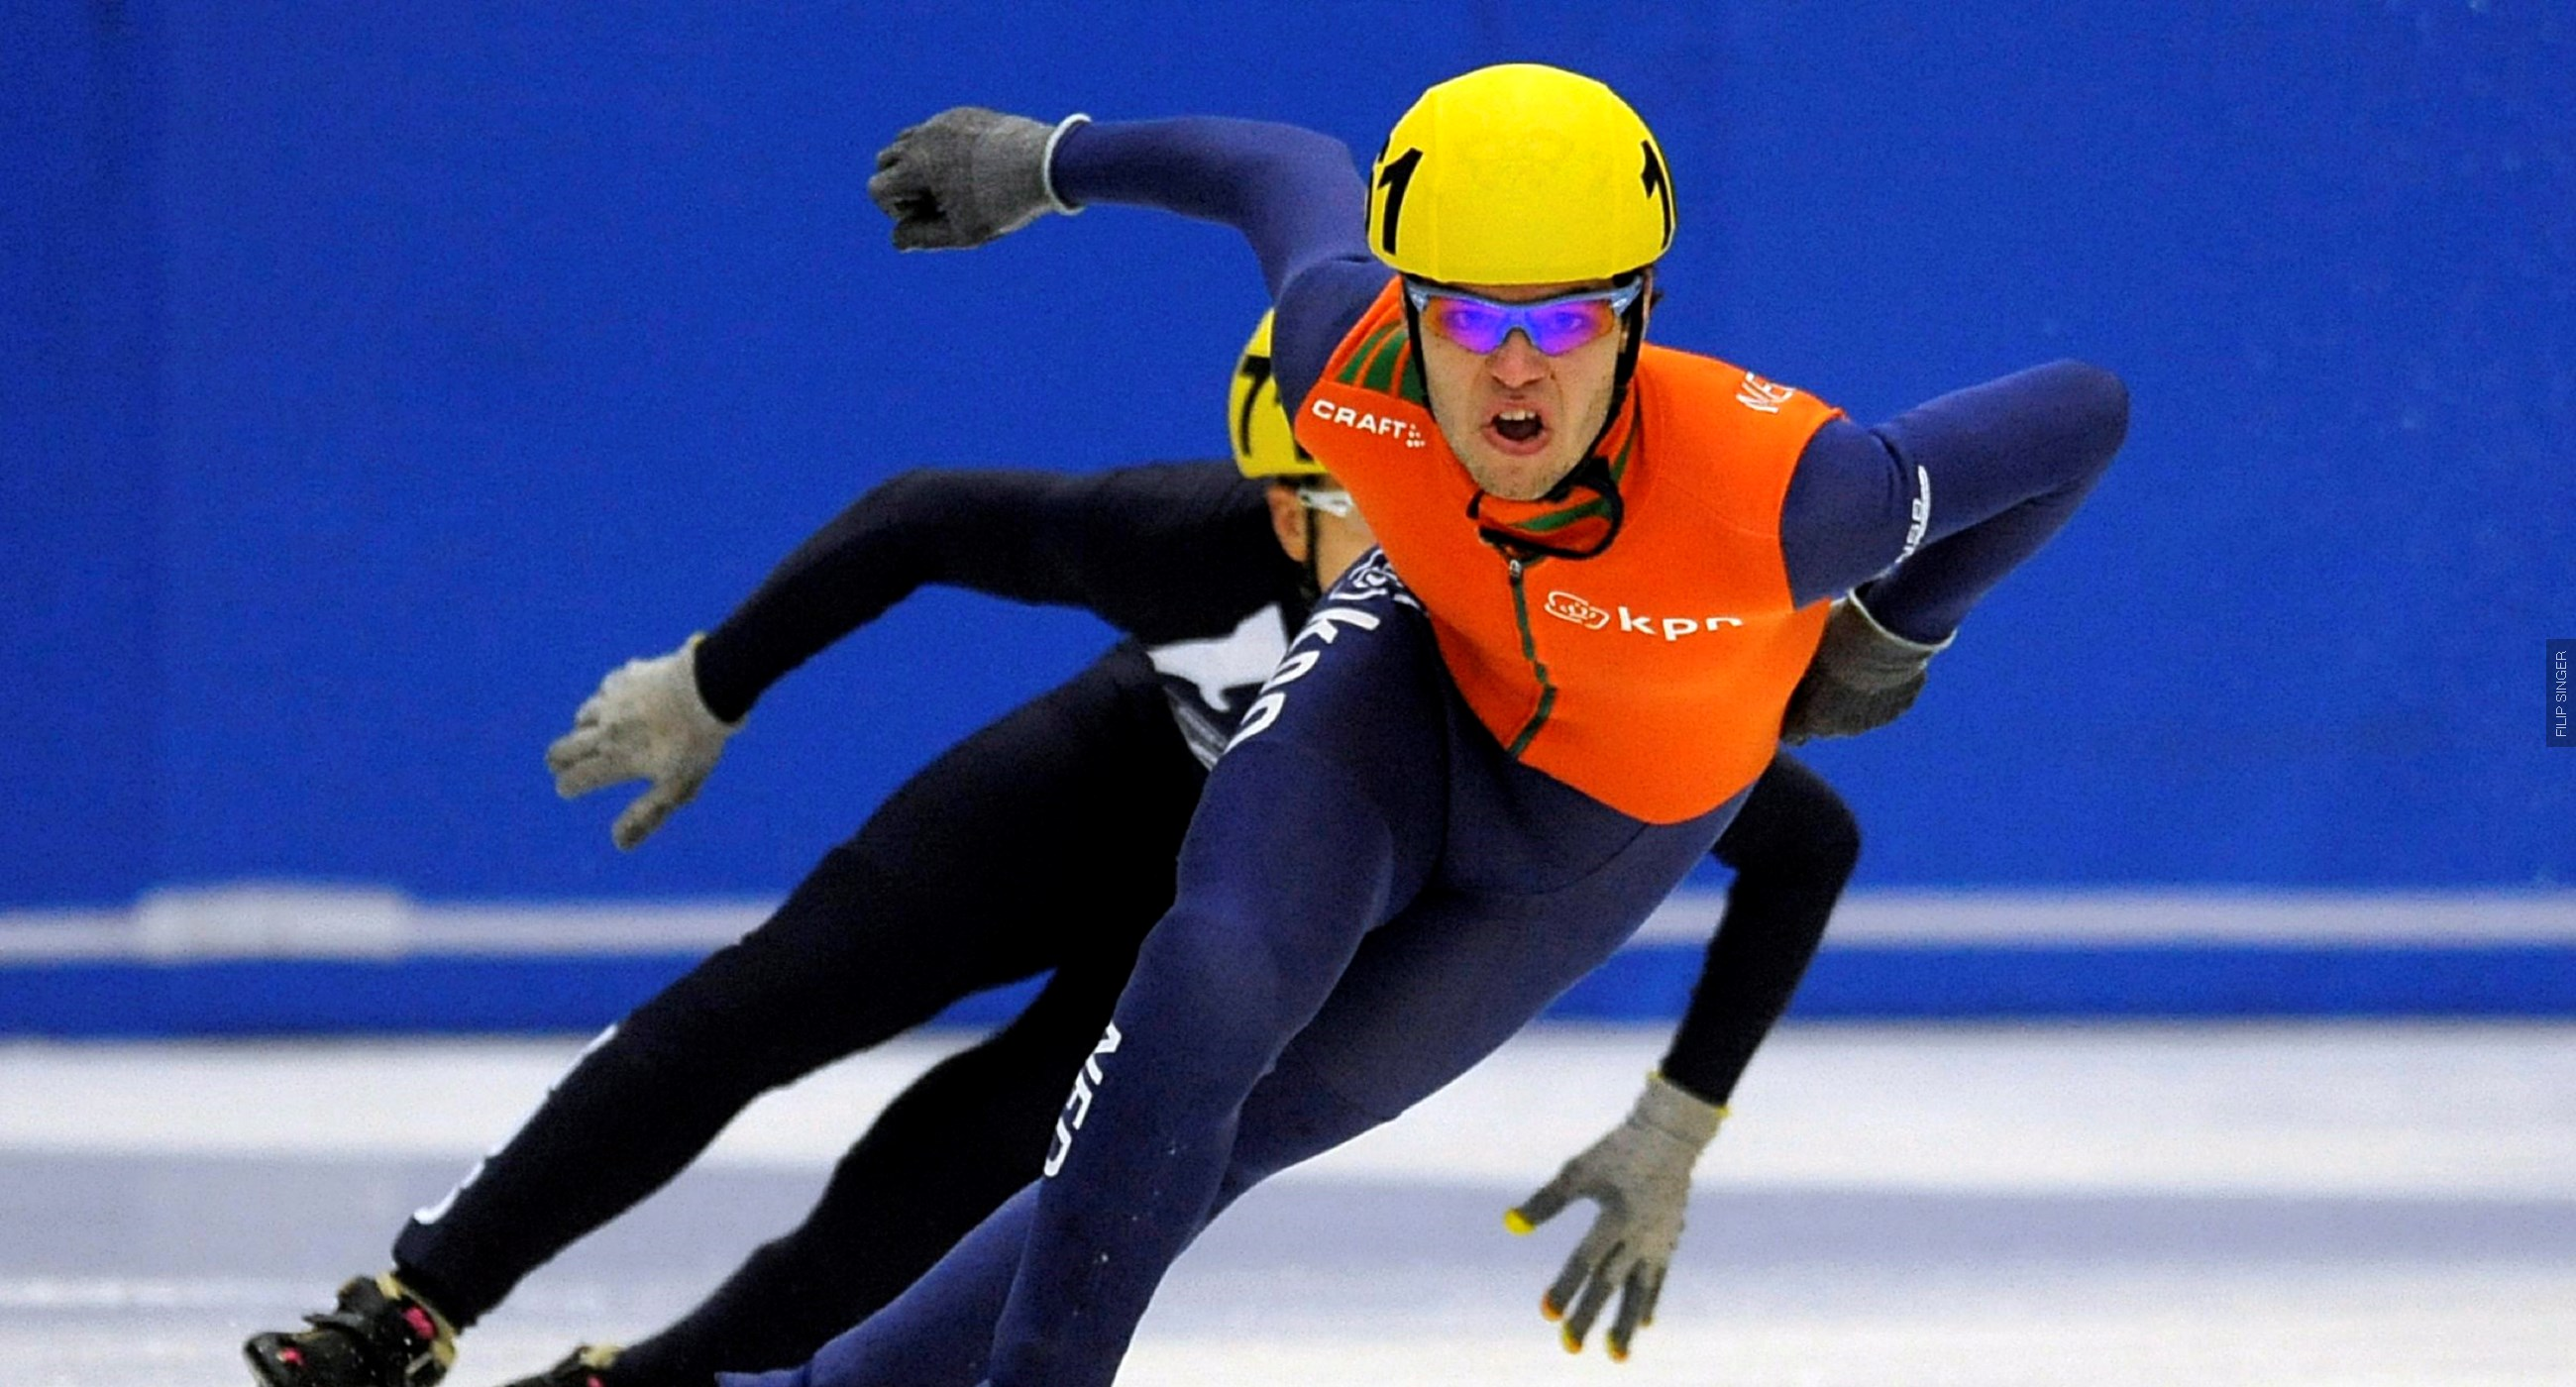 Wereldbeker shorttrack, Almaty